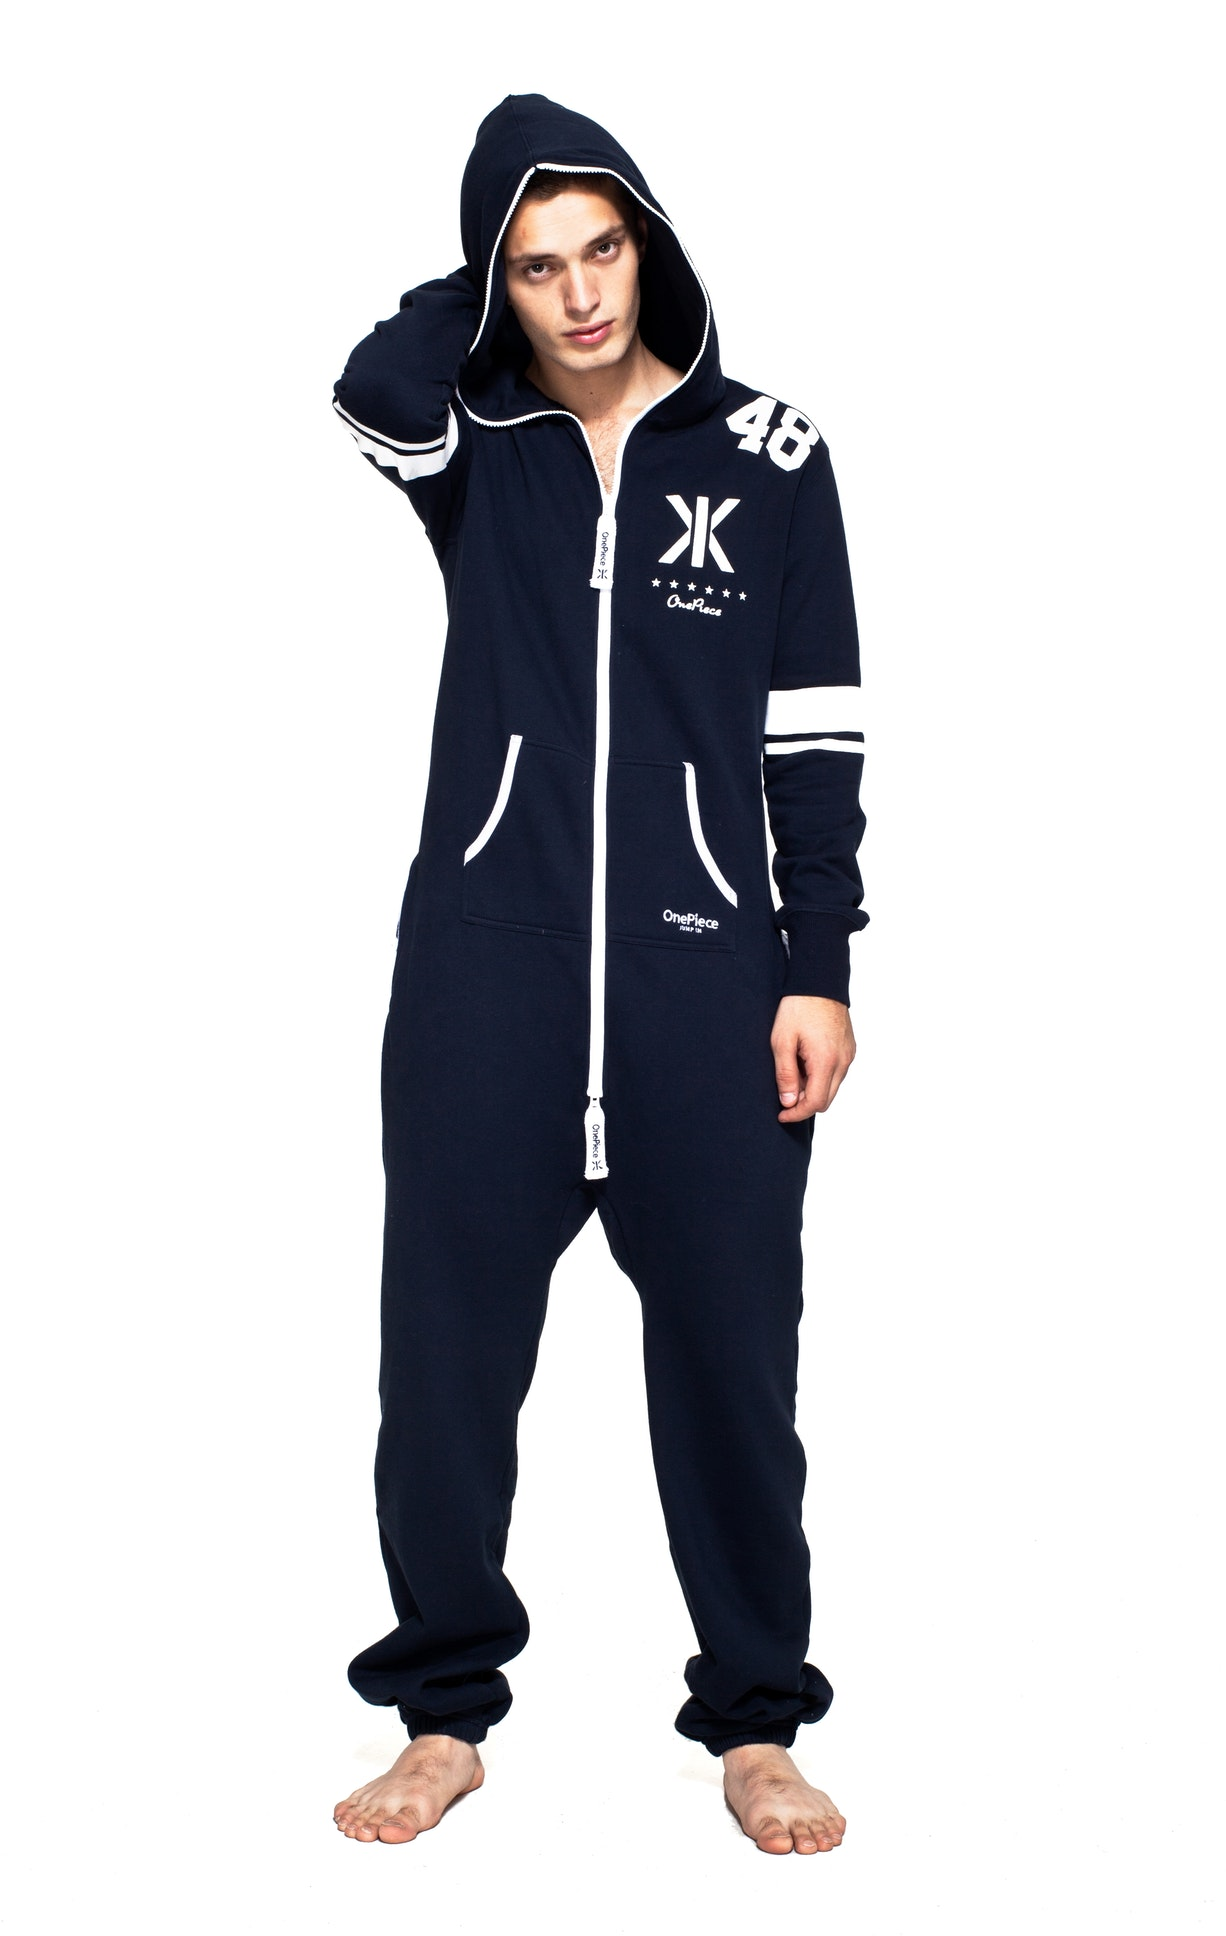 Sale Onesies The onesie has fast become a wardrobe staple so snap up the latest style in sale today - one's just not enough! From novelty onesies at knock down prices to fleece faves and hot hooded designs, we've got every style covered.